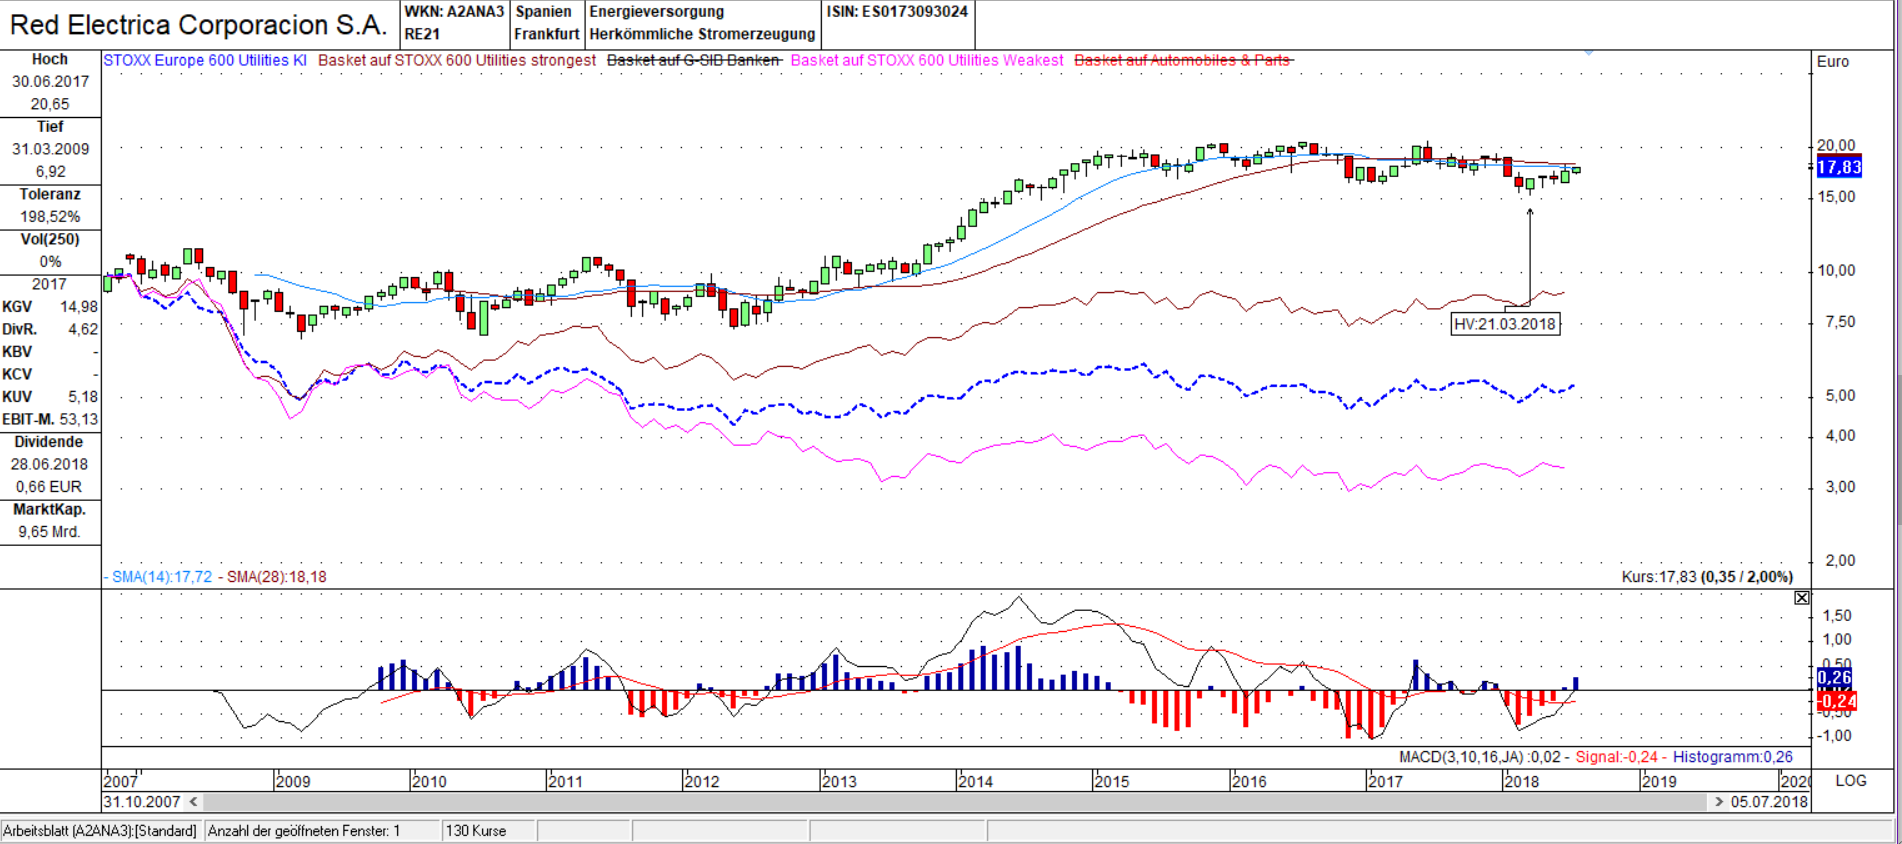 Red Electrica Corporacion SA vs. STOXX 600 Utilities Candle Monats Chart